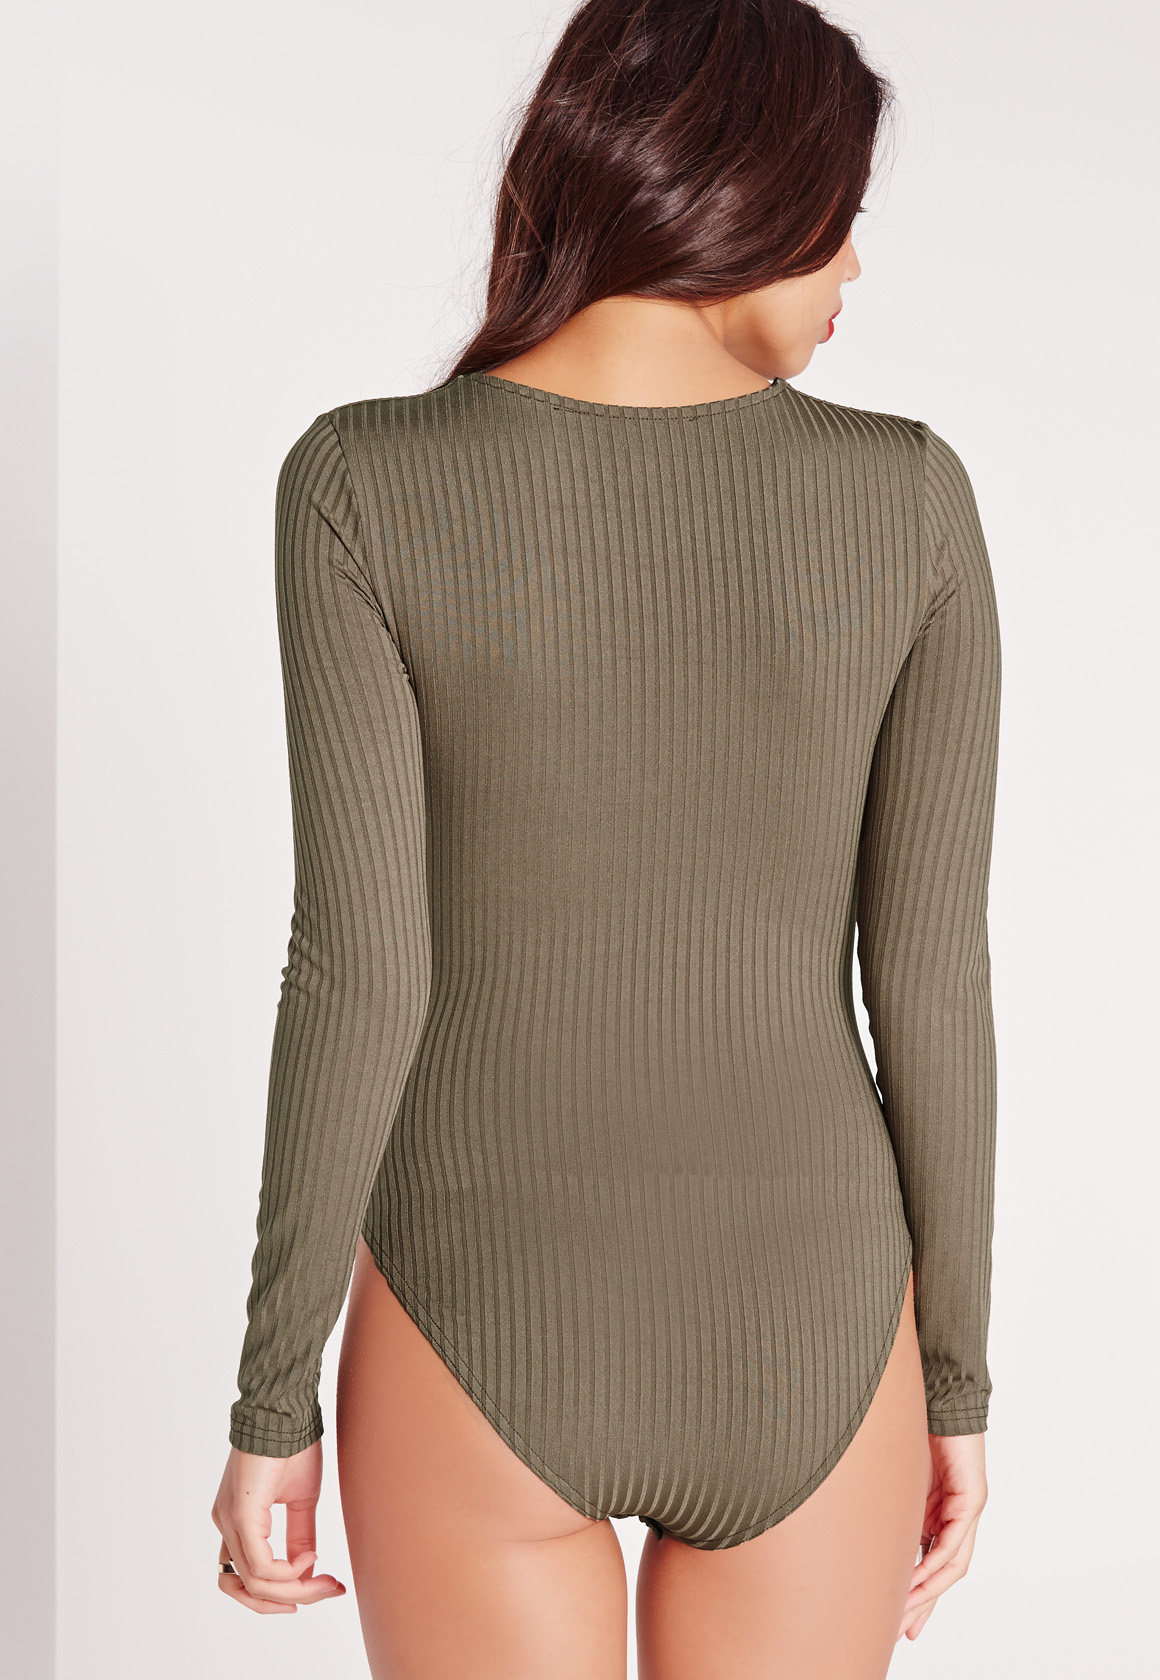 Lyst - Missguided Ribbed Lace Up Front Long Sleeve Bodysuit Khaki in ... 68045f365